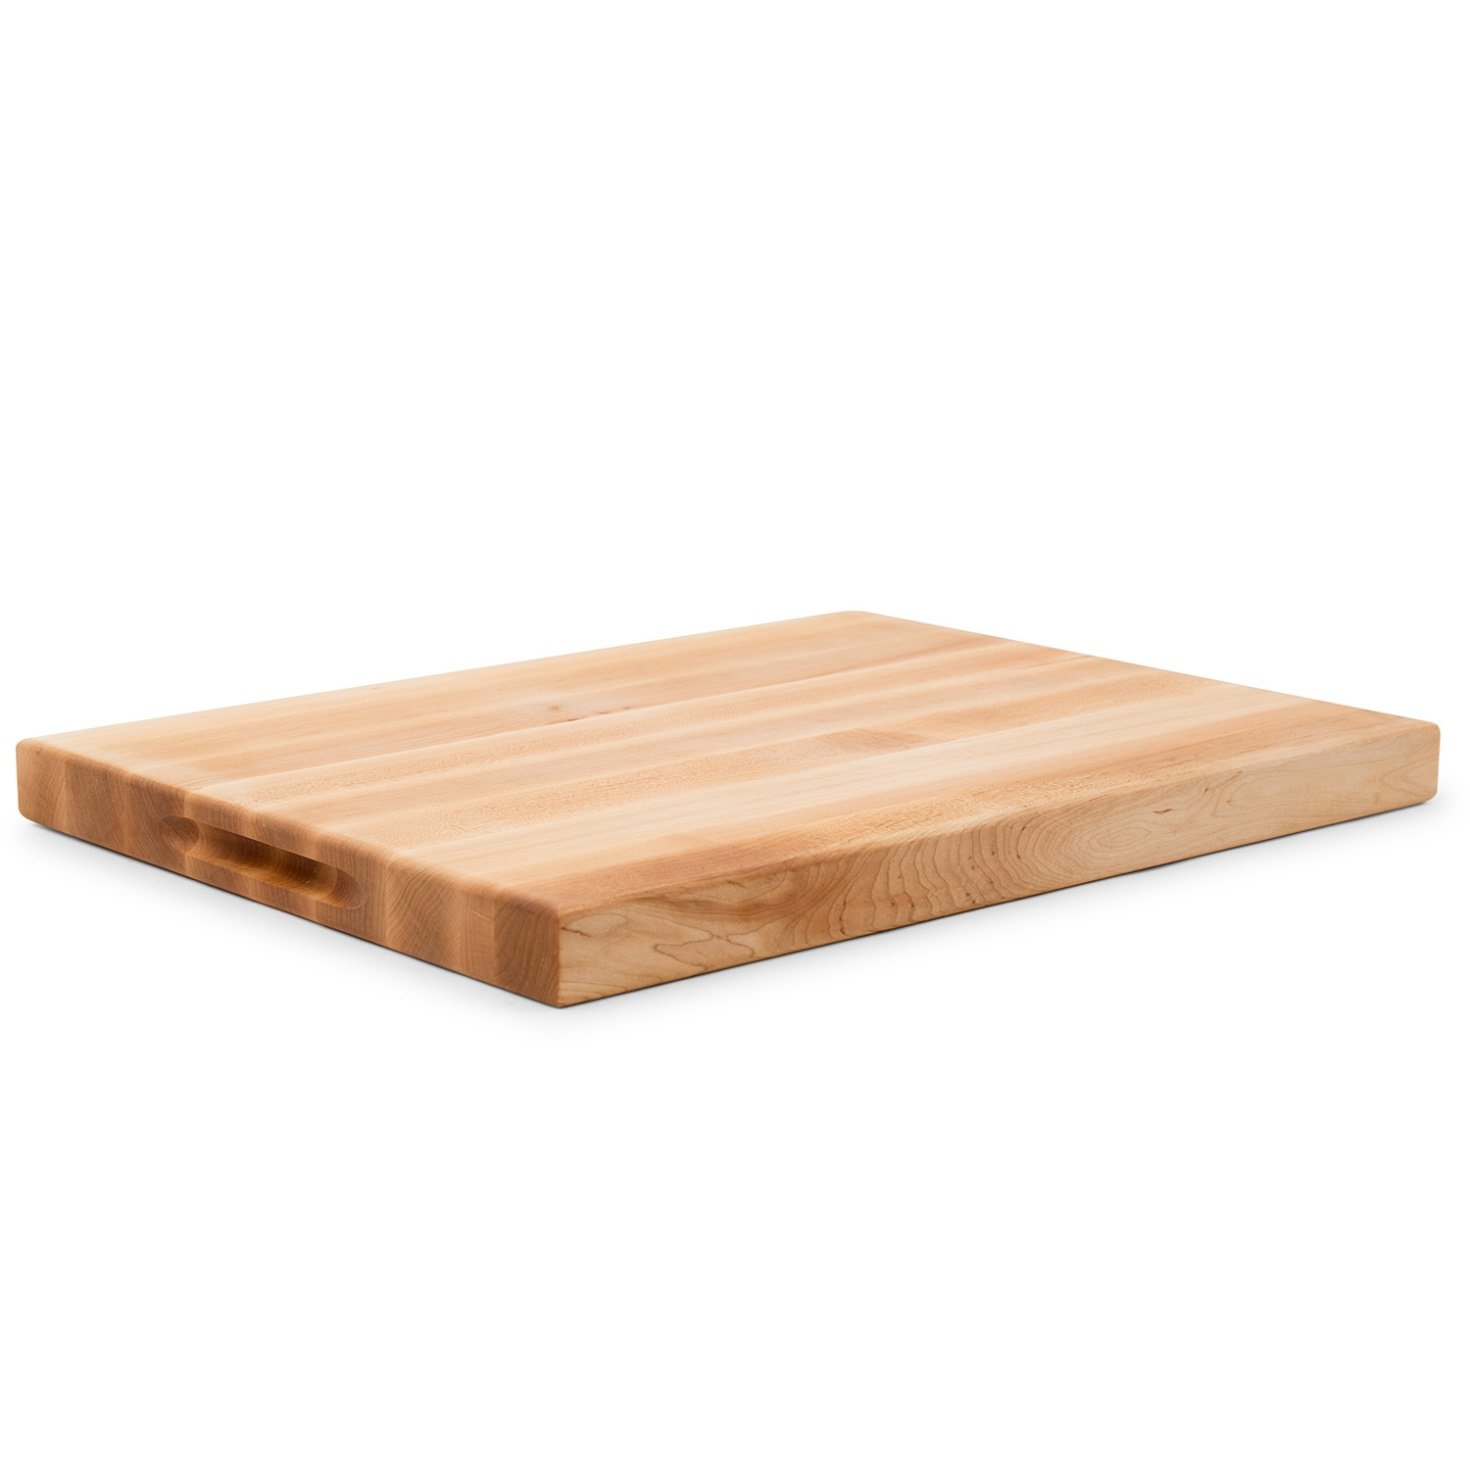 John Boos Maple Wood Edge Grain Reversible Cutting Board with Juice Groove, 20 Inches x 15 Inches x 1.5 Inches by John Boos (Image #3)